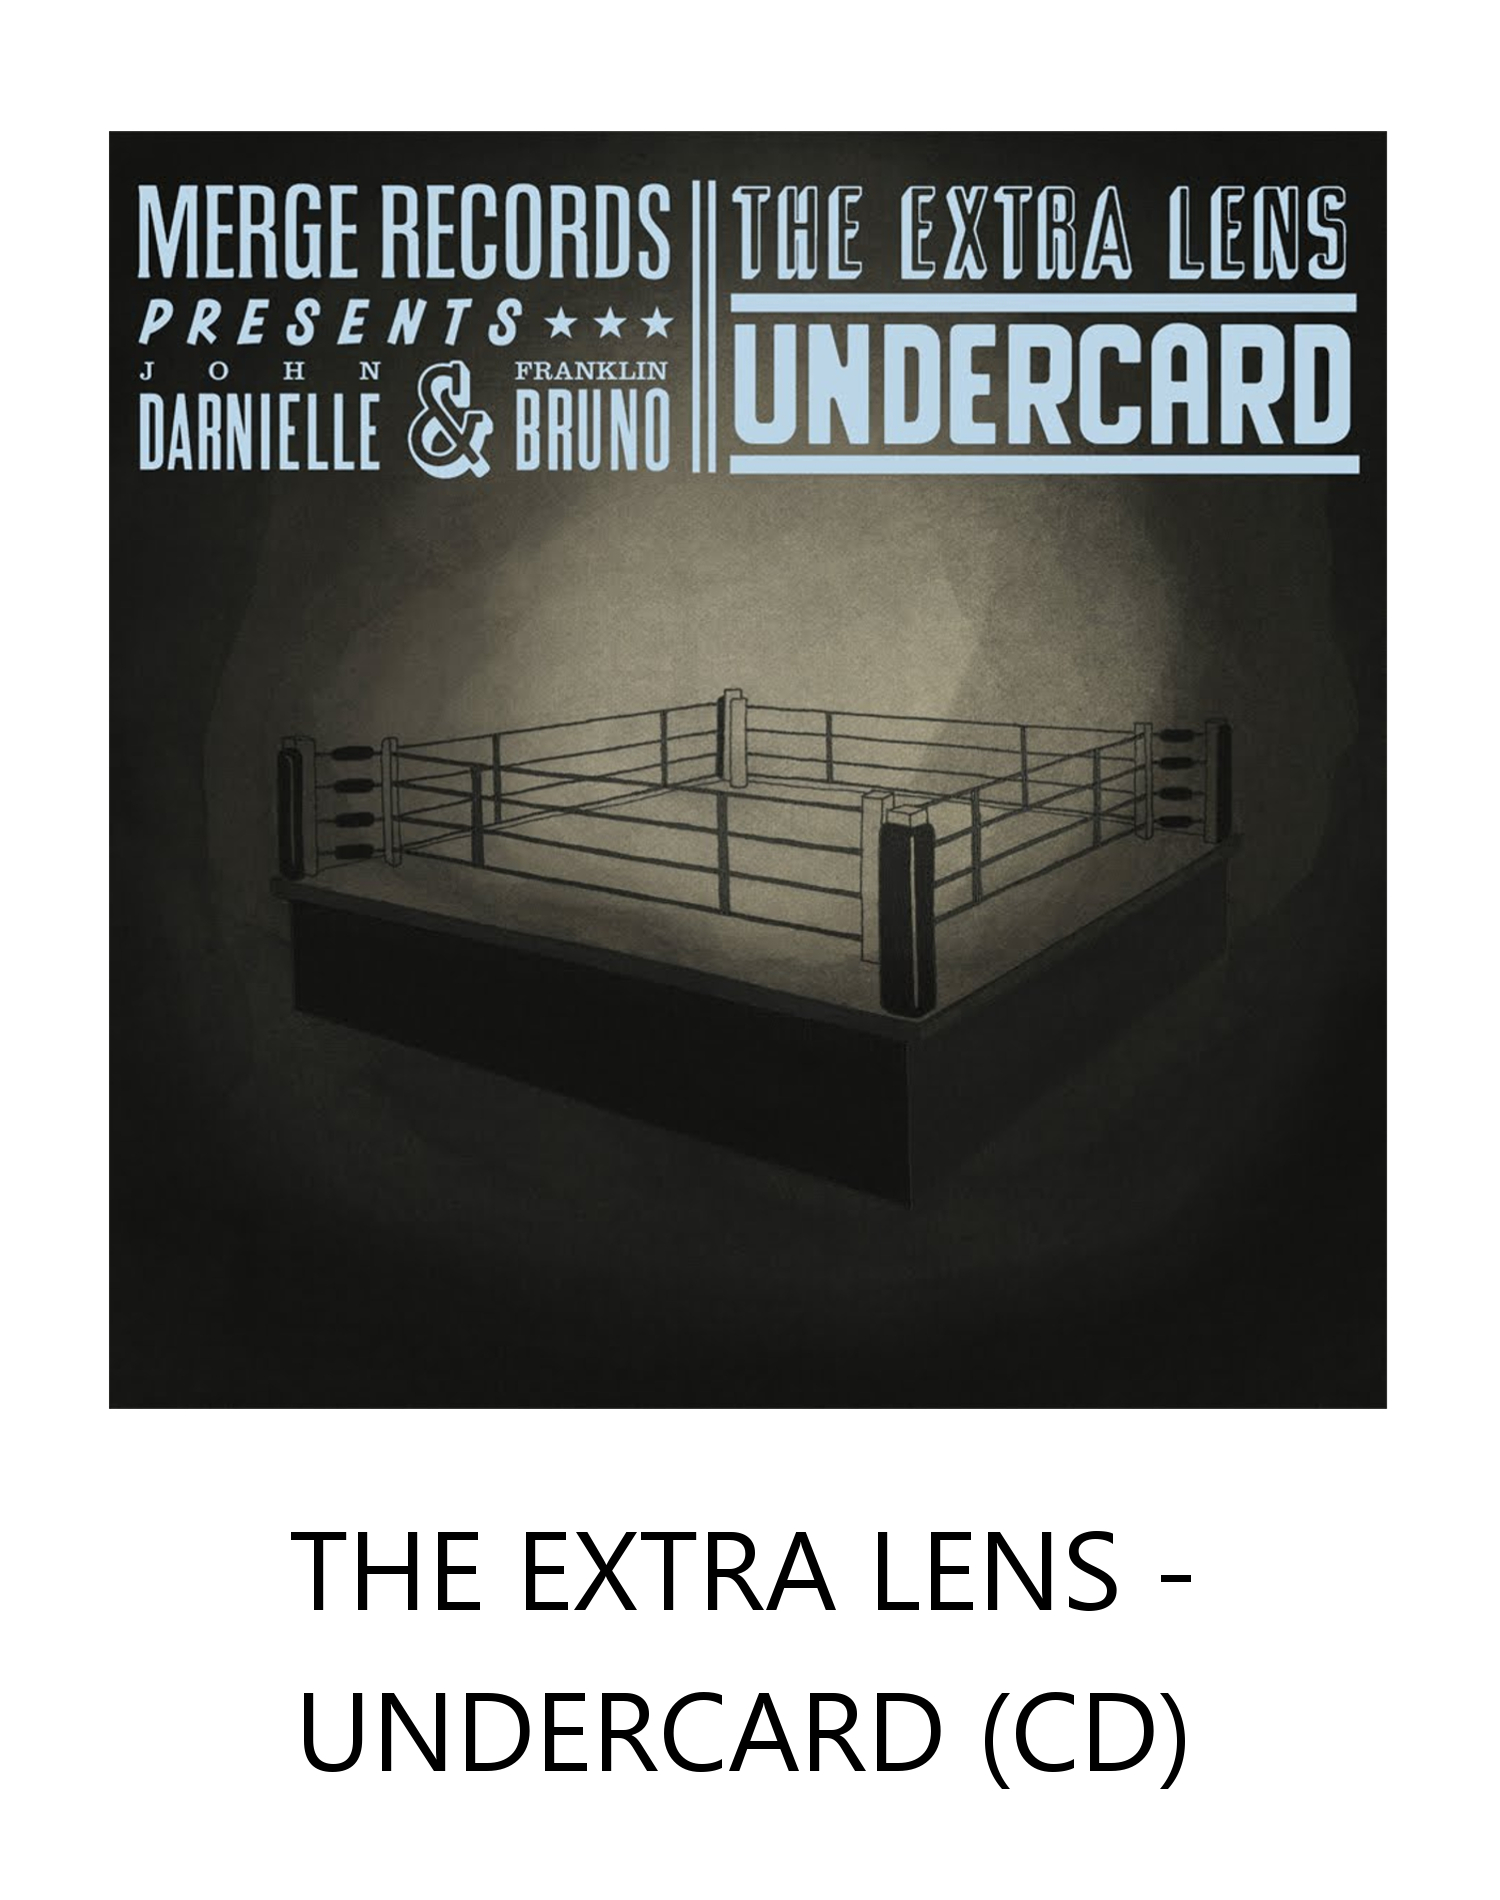 http://sumppumprecords.com/distro-d/the-extra-lens-undercard